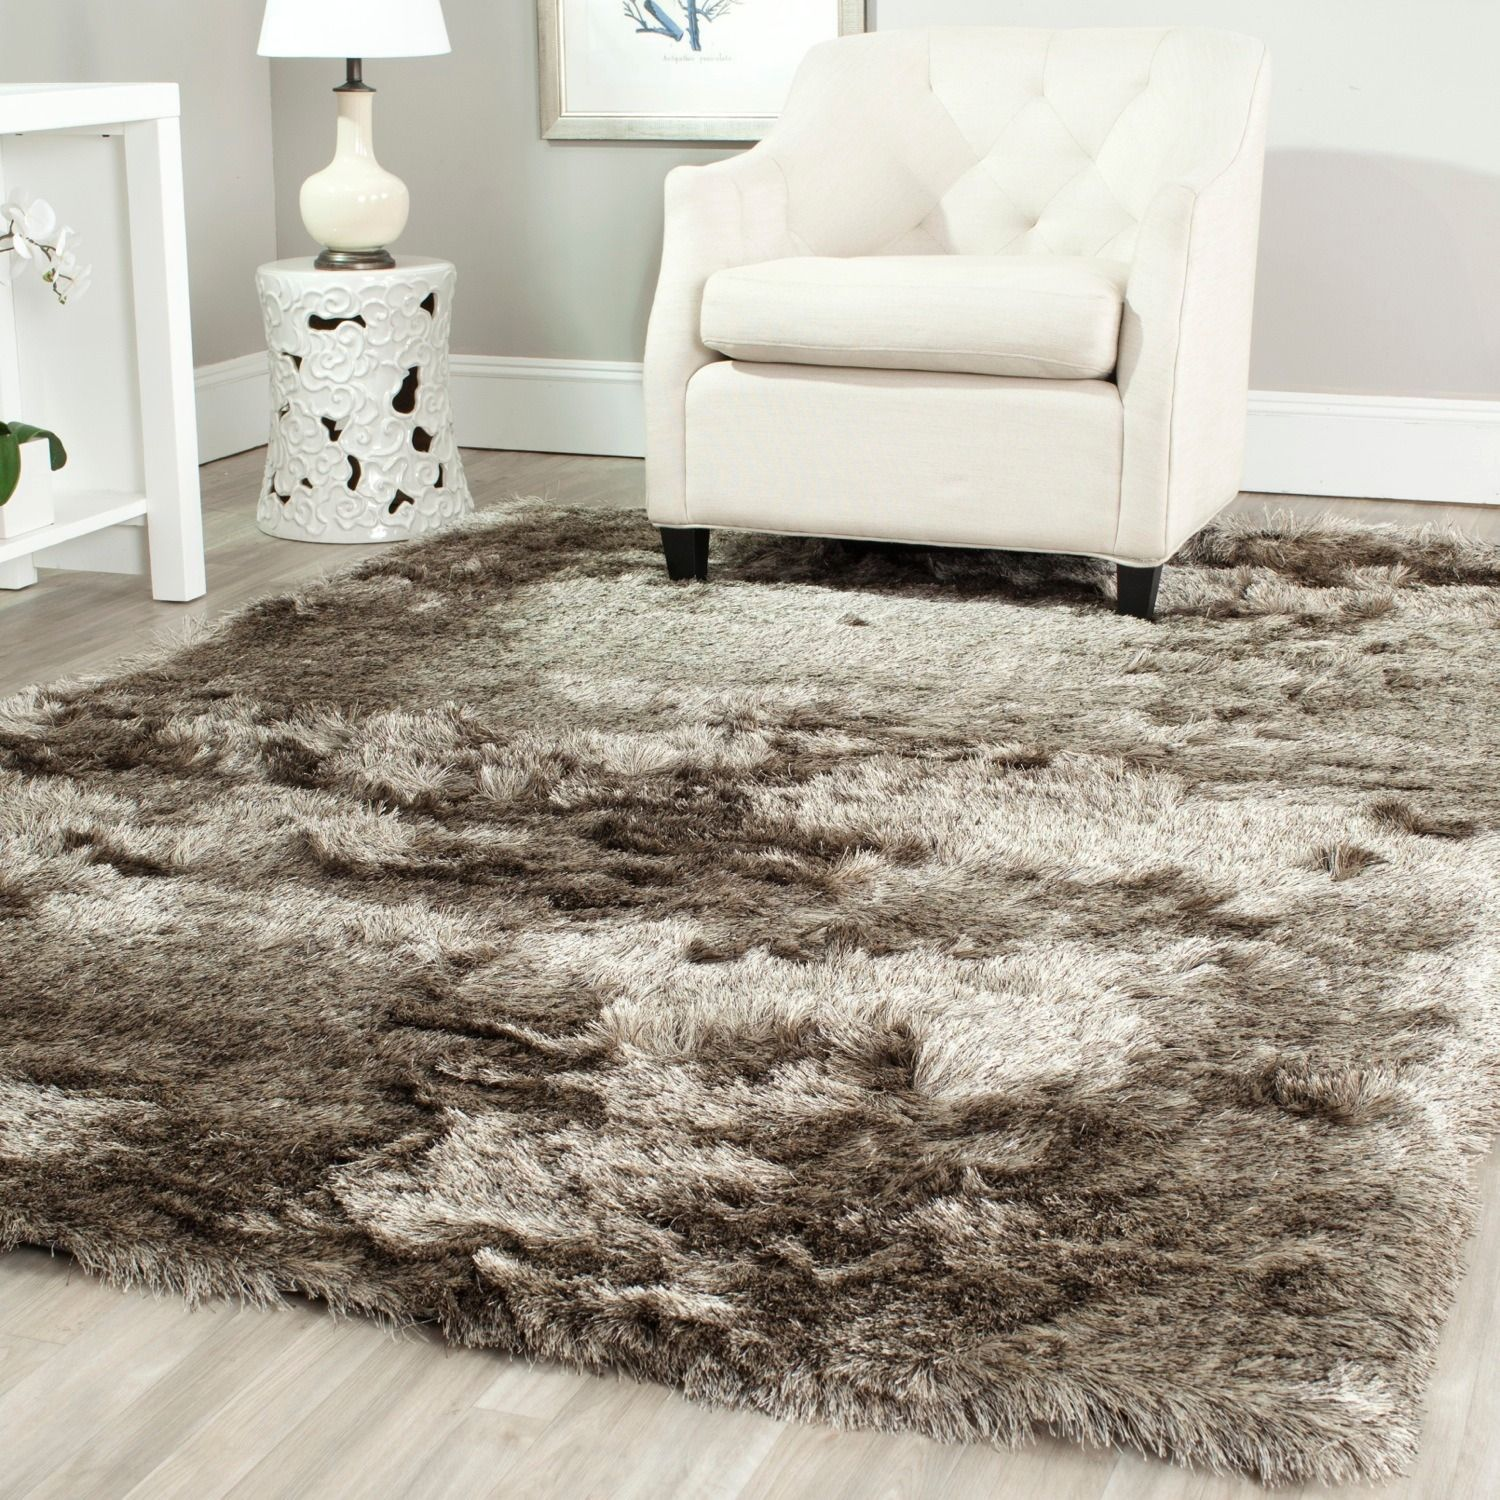 Pretty Marrakesh Shag Rug | Splendiferous Shaggy Rugs for Living Room